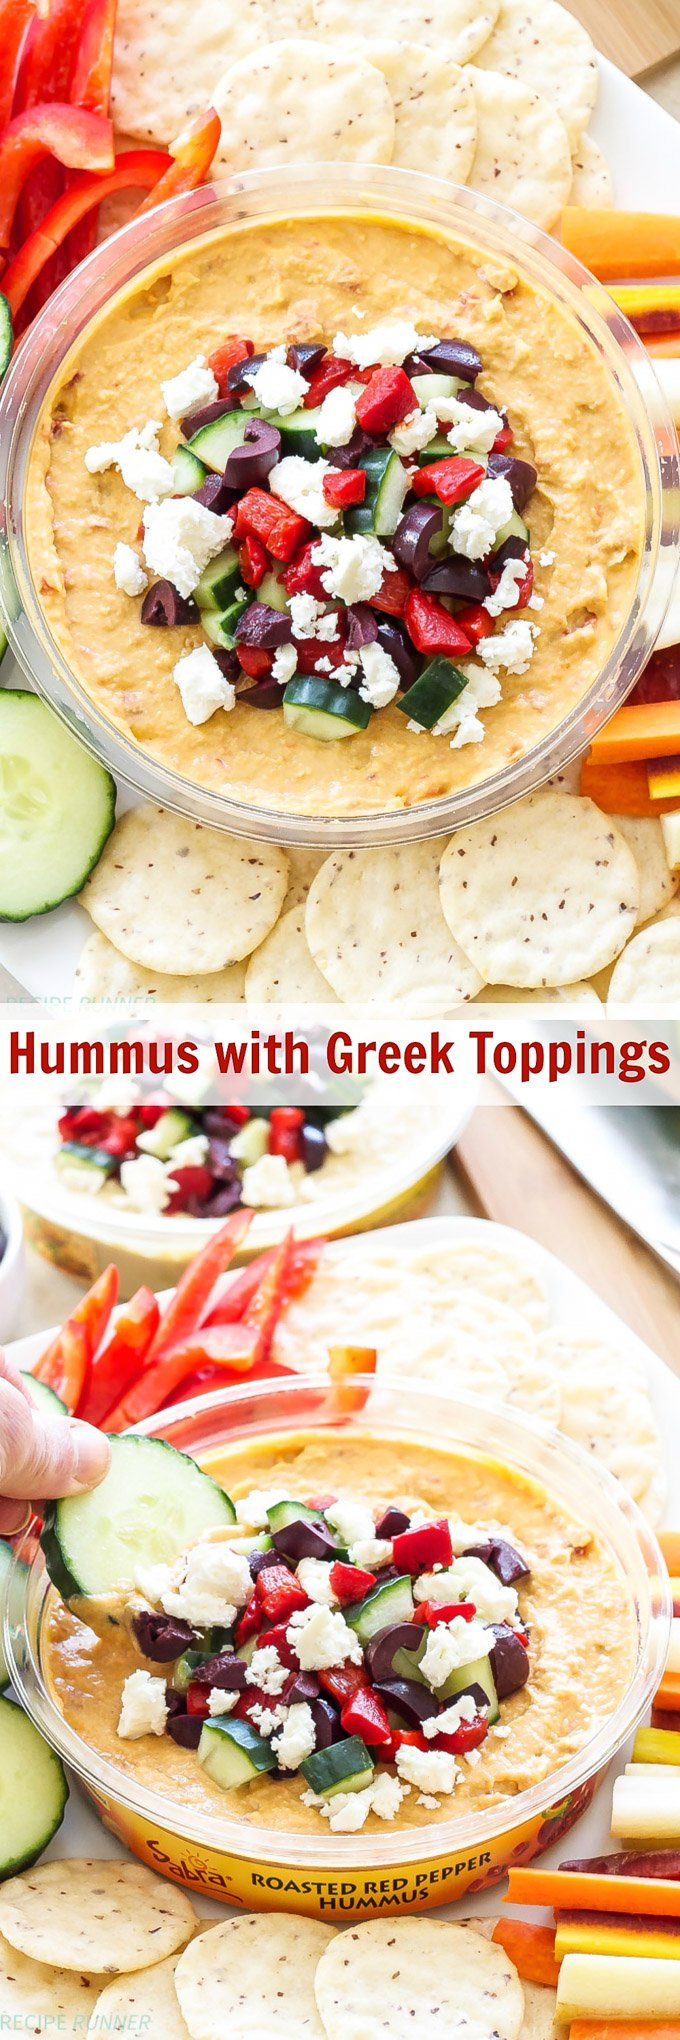 Hummus with Greek Toppings | Turn an ordinary container of hummus into a delicious, custom creation by adding a few toppings to it!